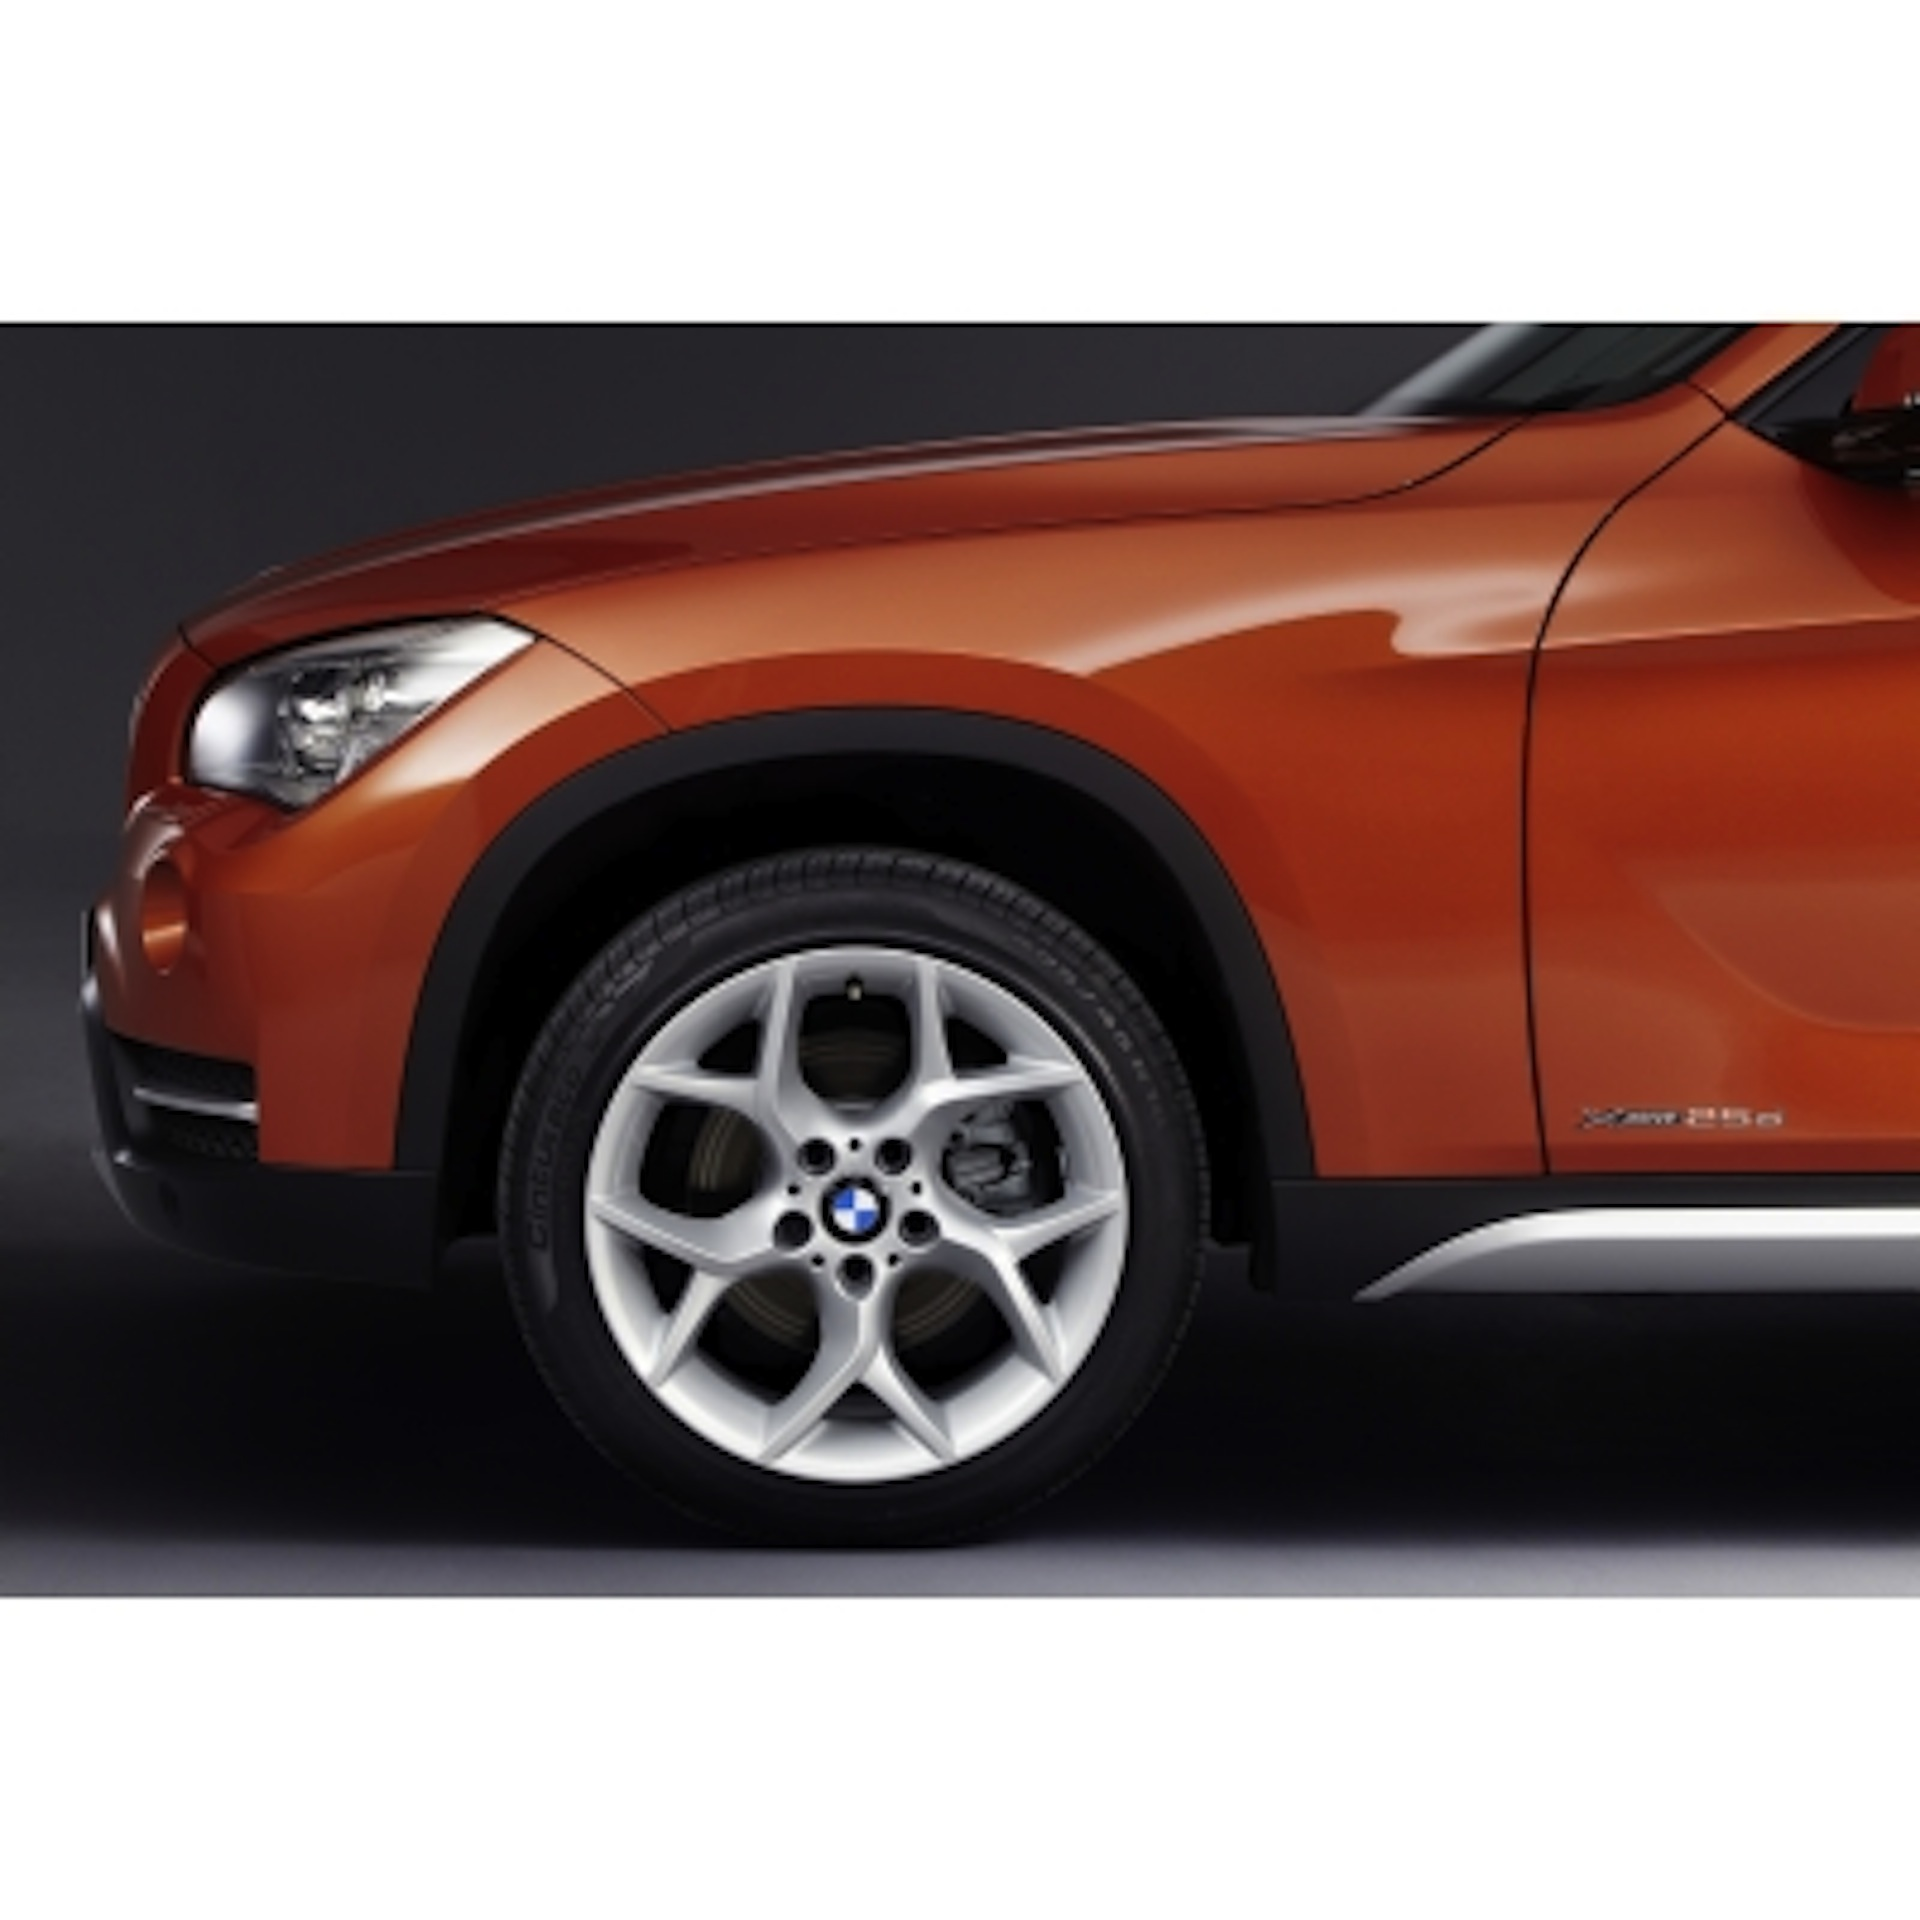 Bmw Xdrive35i Price: 2013 BMW X1 LCI And U.S. Models Information, Photos, Pricing